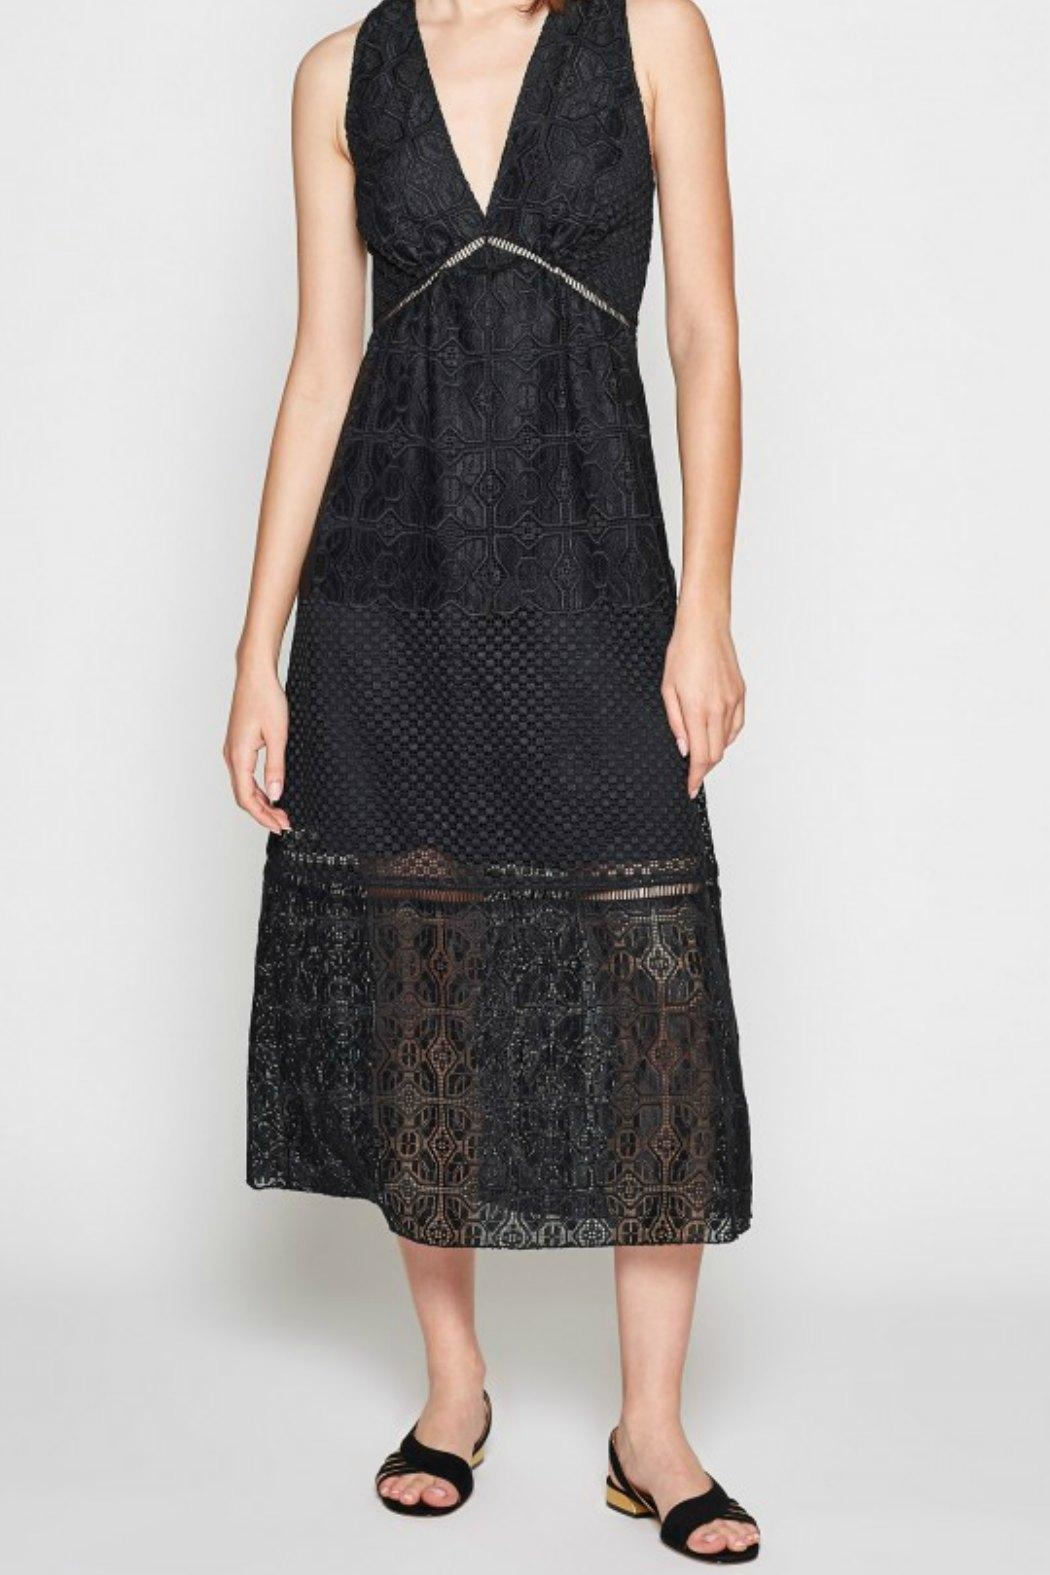 Joie Ardal Lace Dress - Main Image